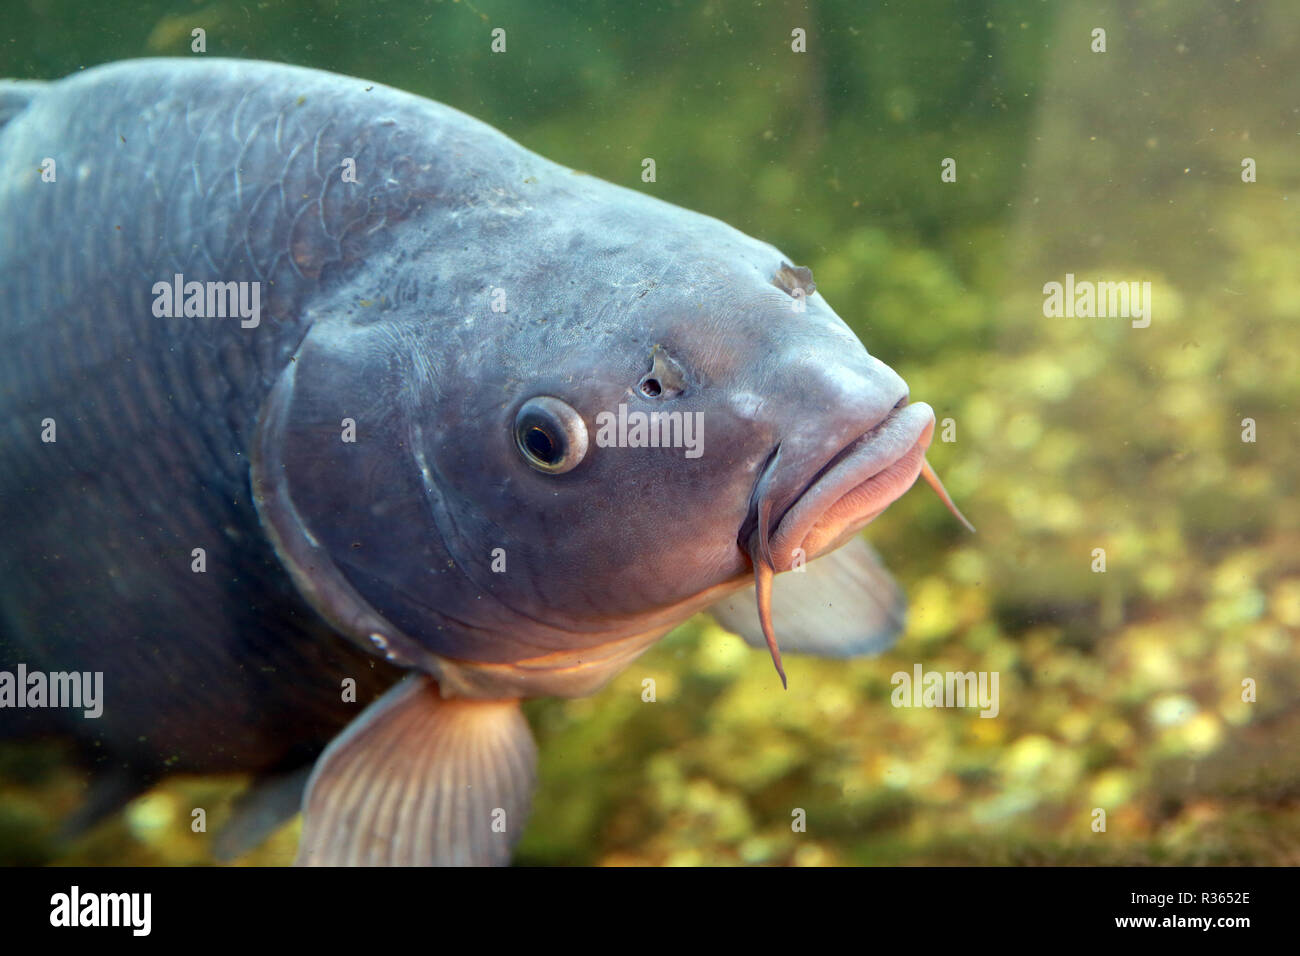 Carp is an atracine fish for the angler - Stock Image